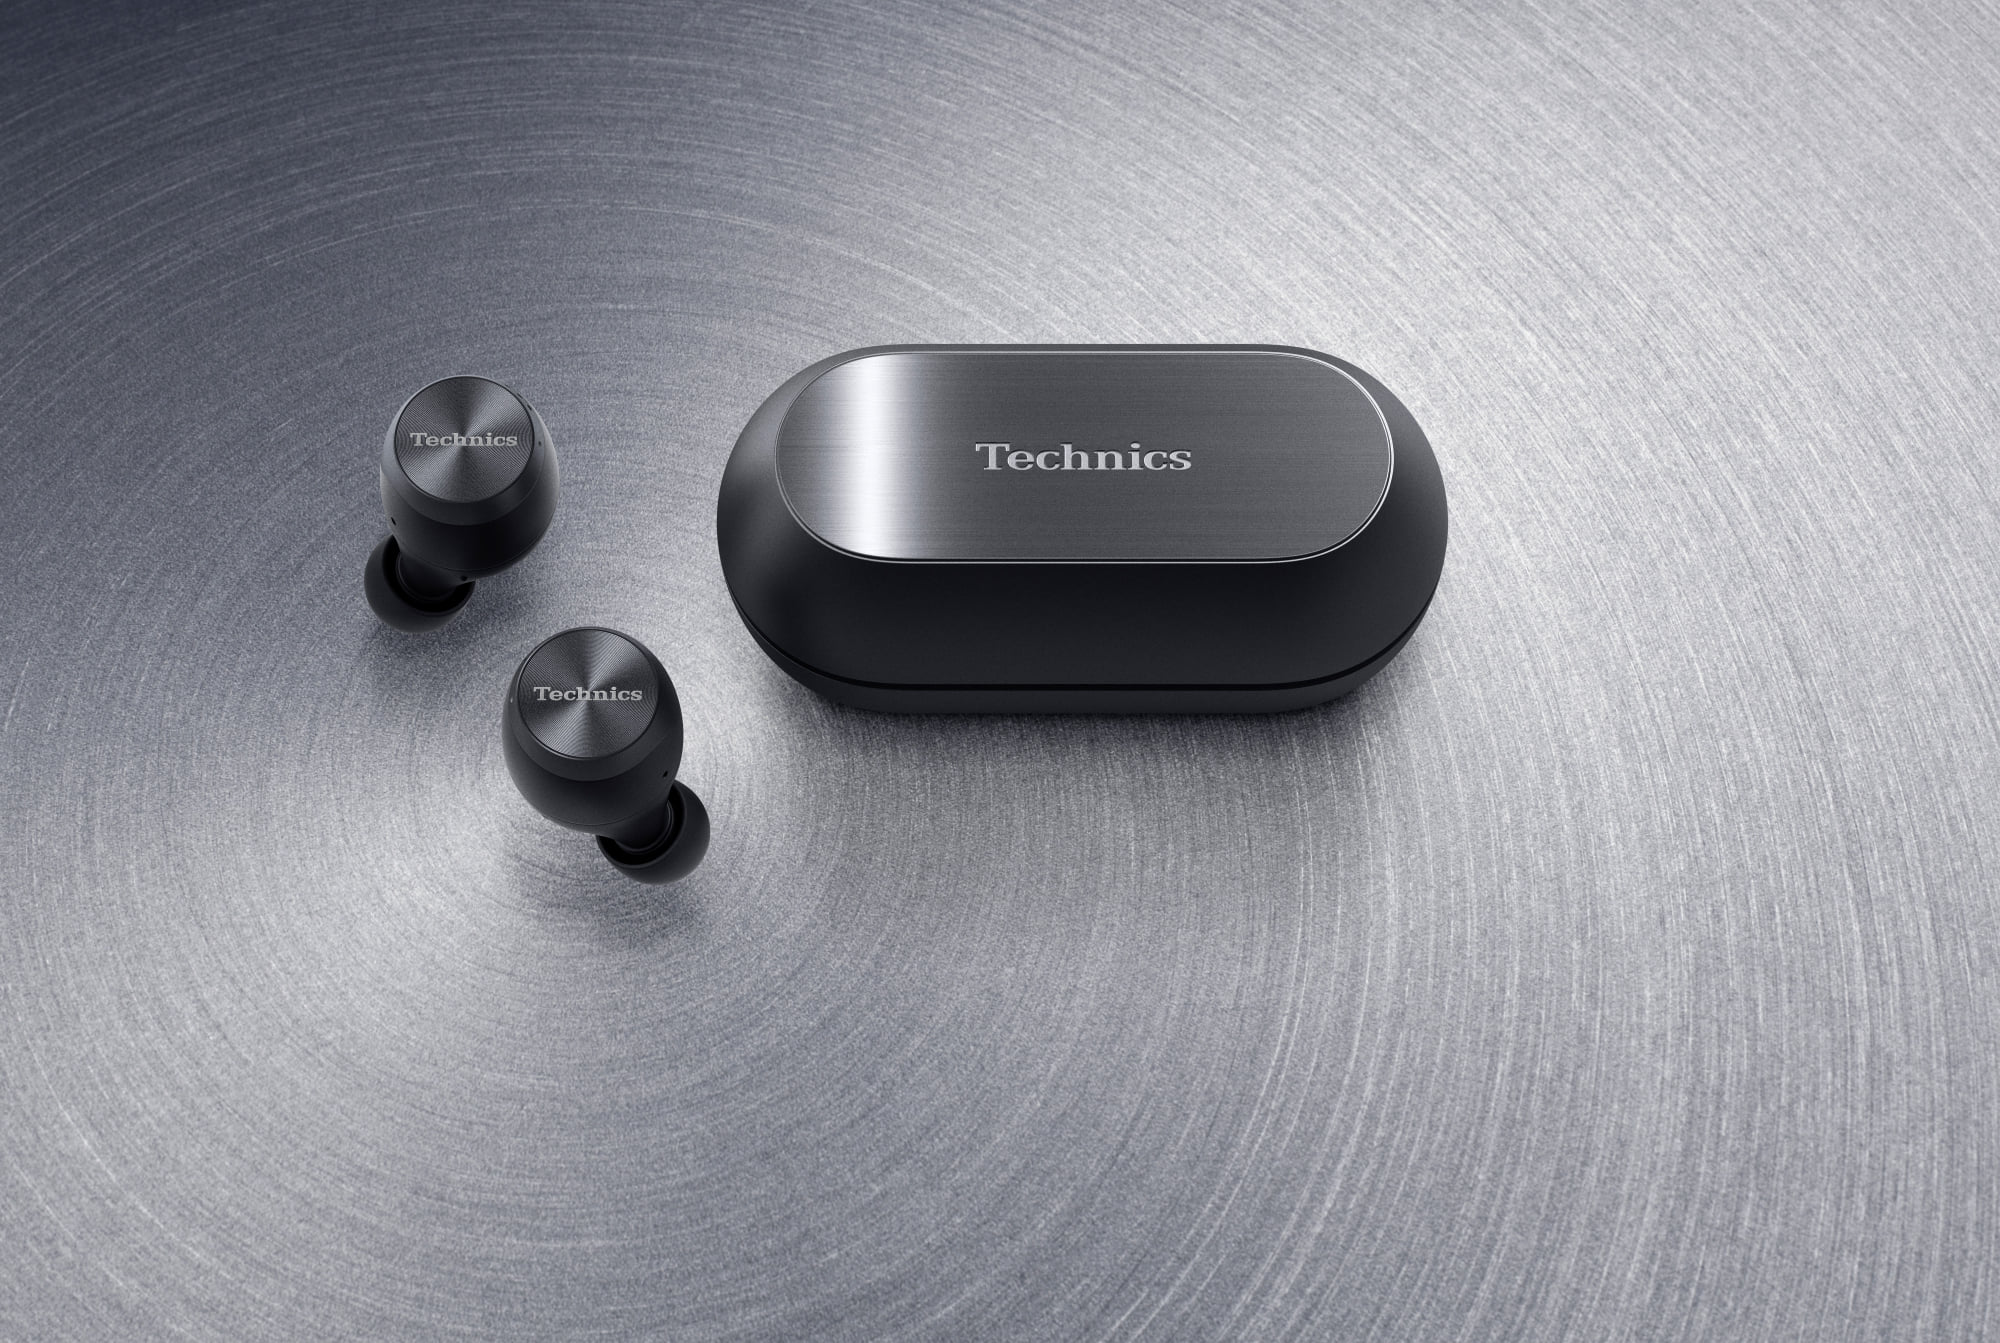 Technics says that it's applied 55 years of audio innovation to create its first true wireless headphones, the active noise-canceling EAH-AZ70W